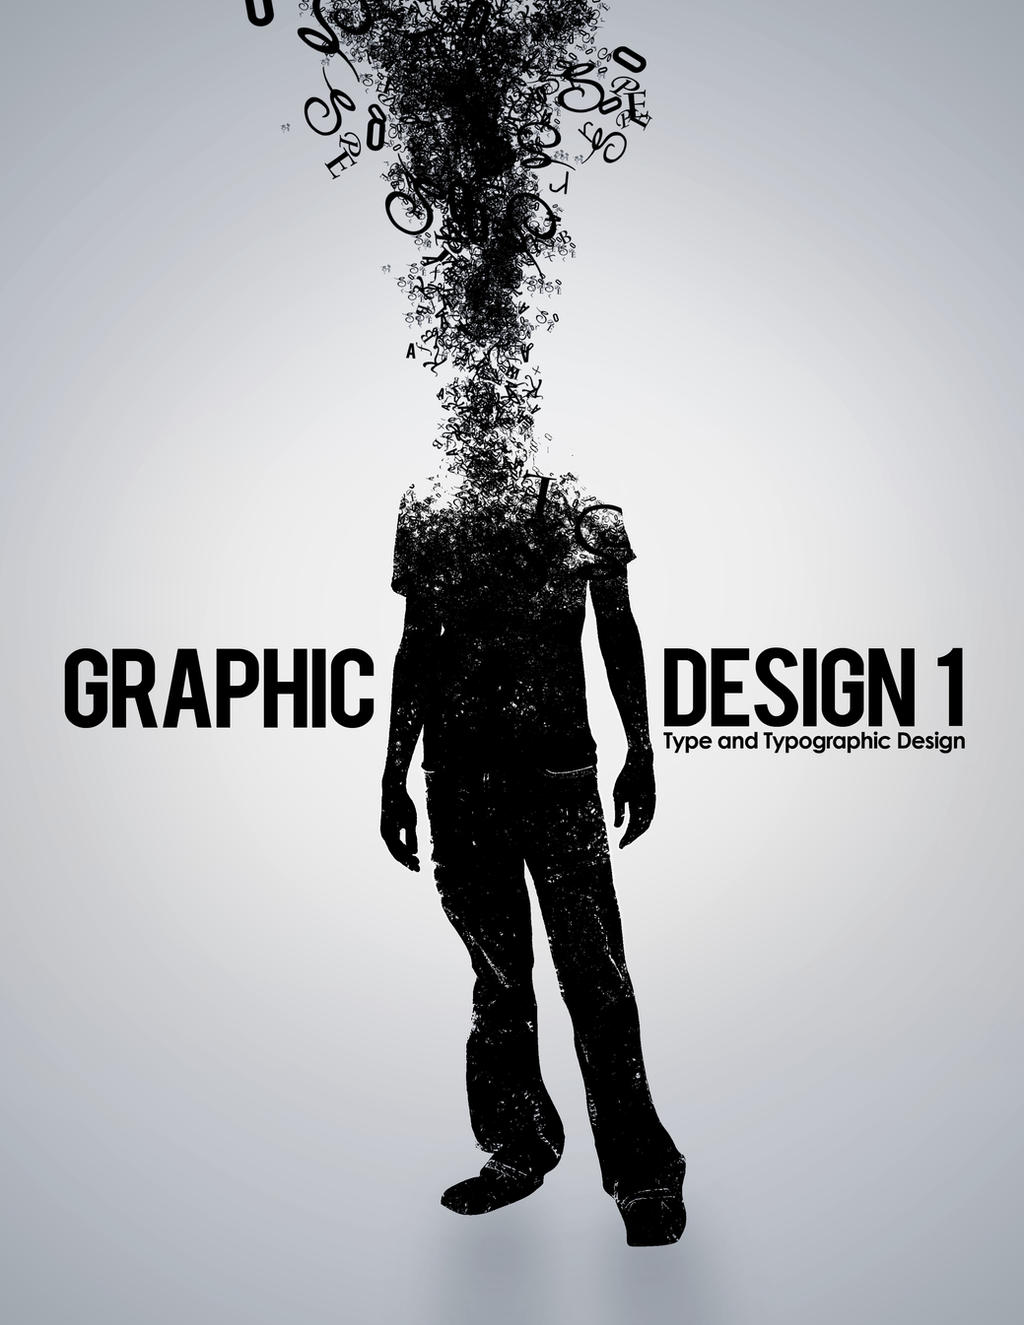 graphic design 1 poster by mechatron2300 graphic design 1 poster by mechatron2300 - Poster Design Ideas